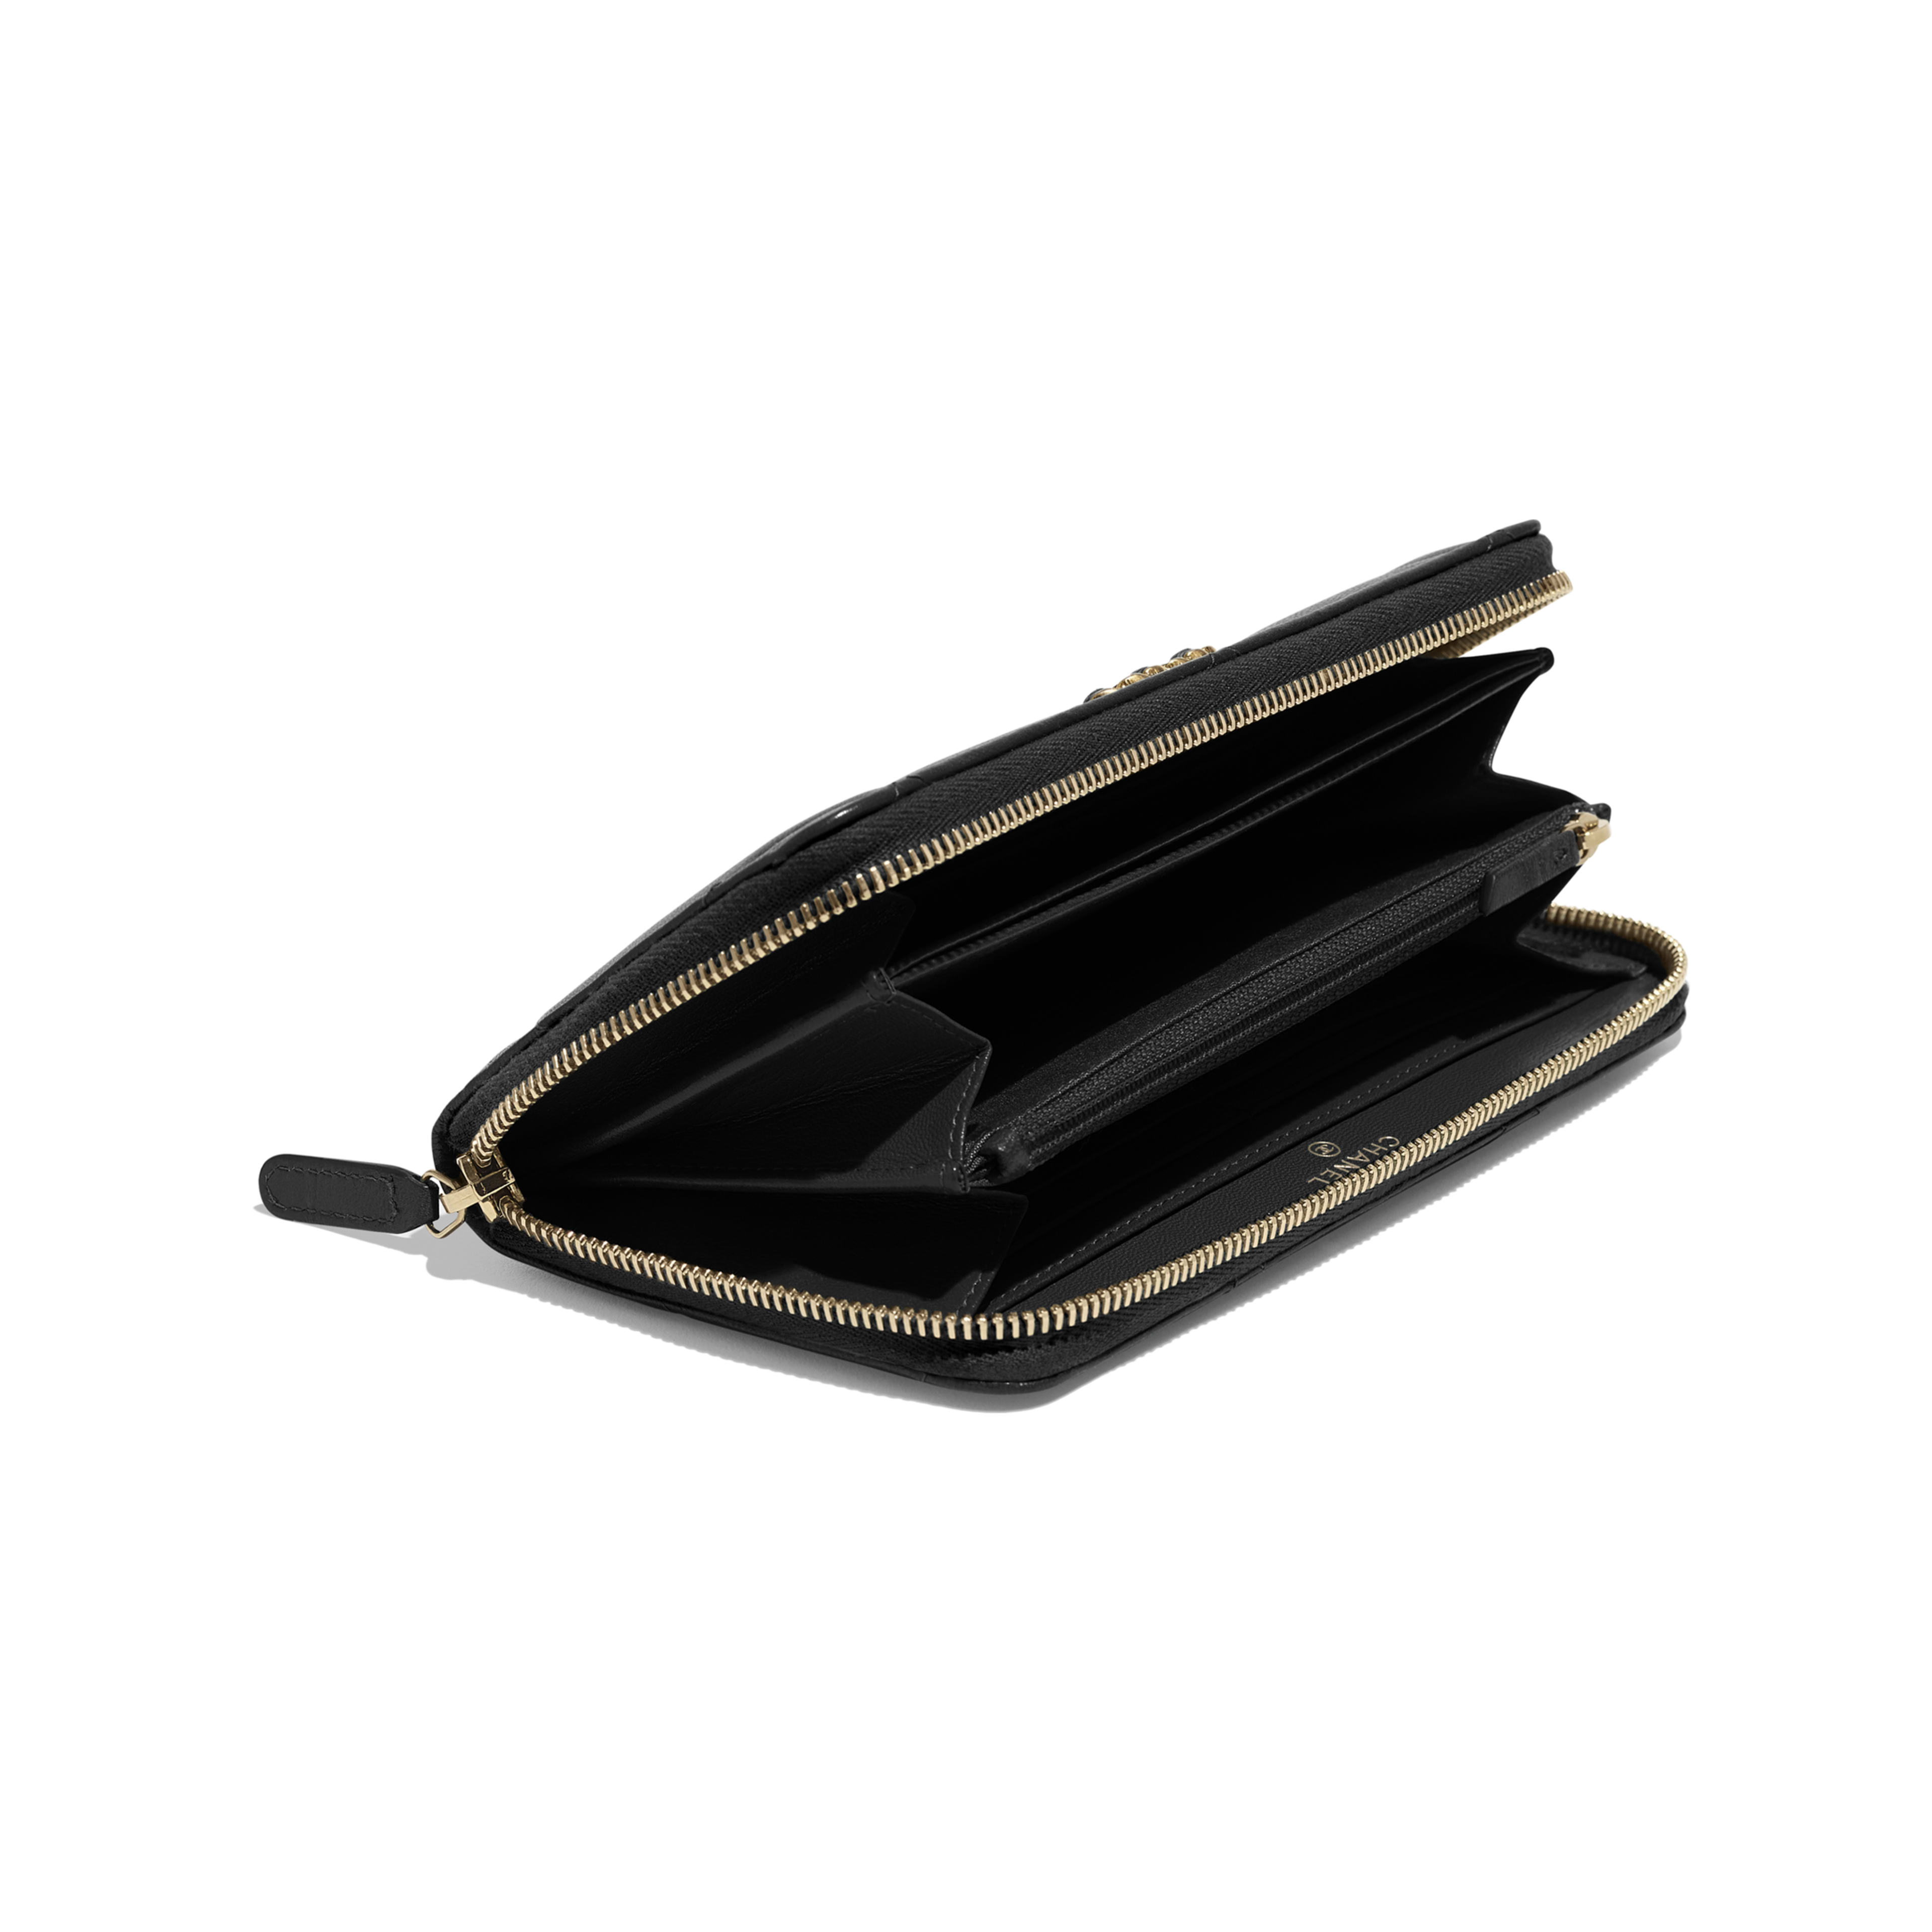 CHANEL 19 Long Zipped Wallet - Black - Goatskin, Gold-Tone, Silver-Tone & Ruthenium-Finish Metal - Extra view - see full sized version